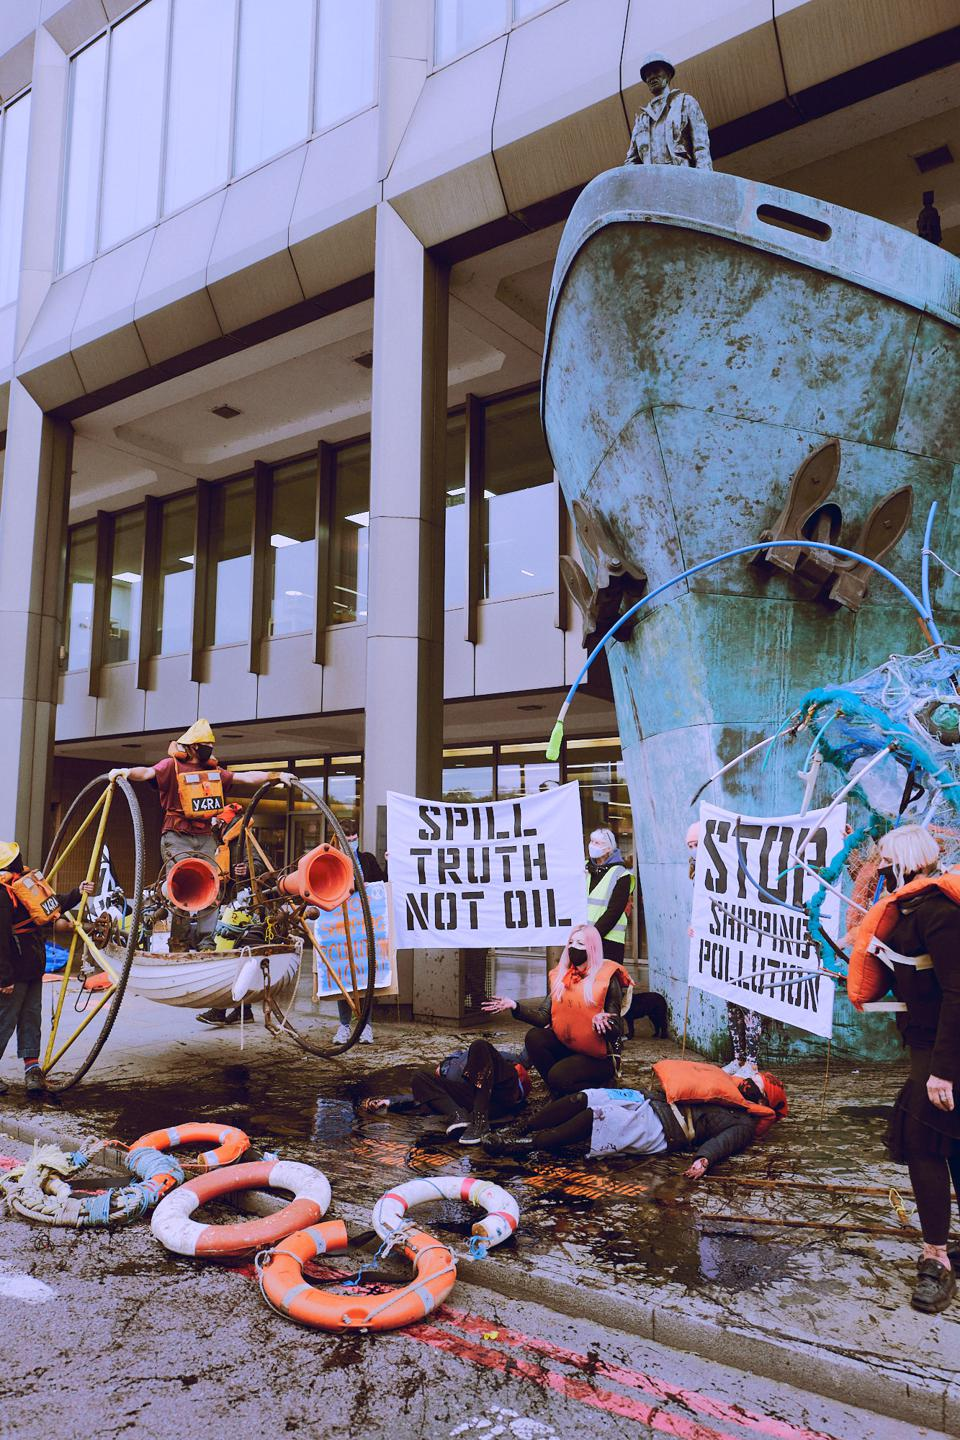 Oct 19: Protests outside the IMO on Monday organized by Ocean Rebellion in response to the IMO's weak stance on climate and the response to oil spills like the Wakashio in Mauritius